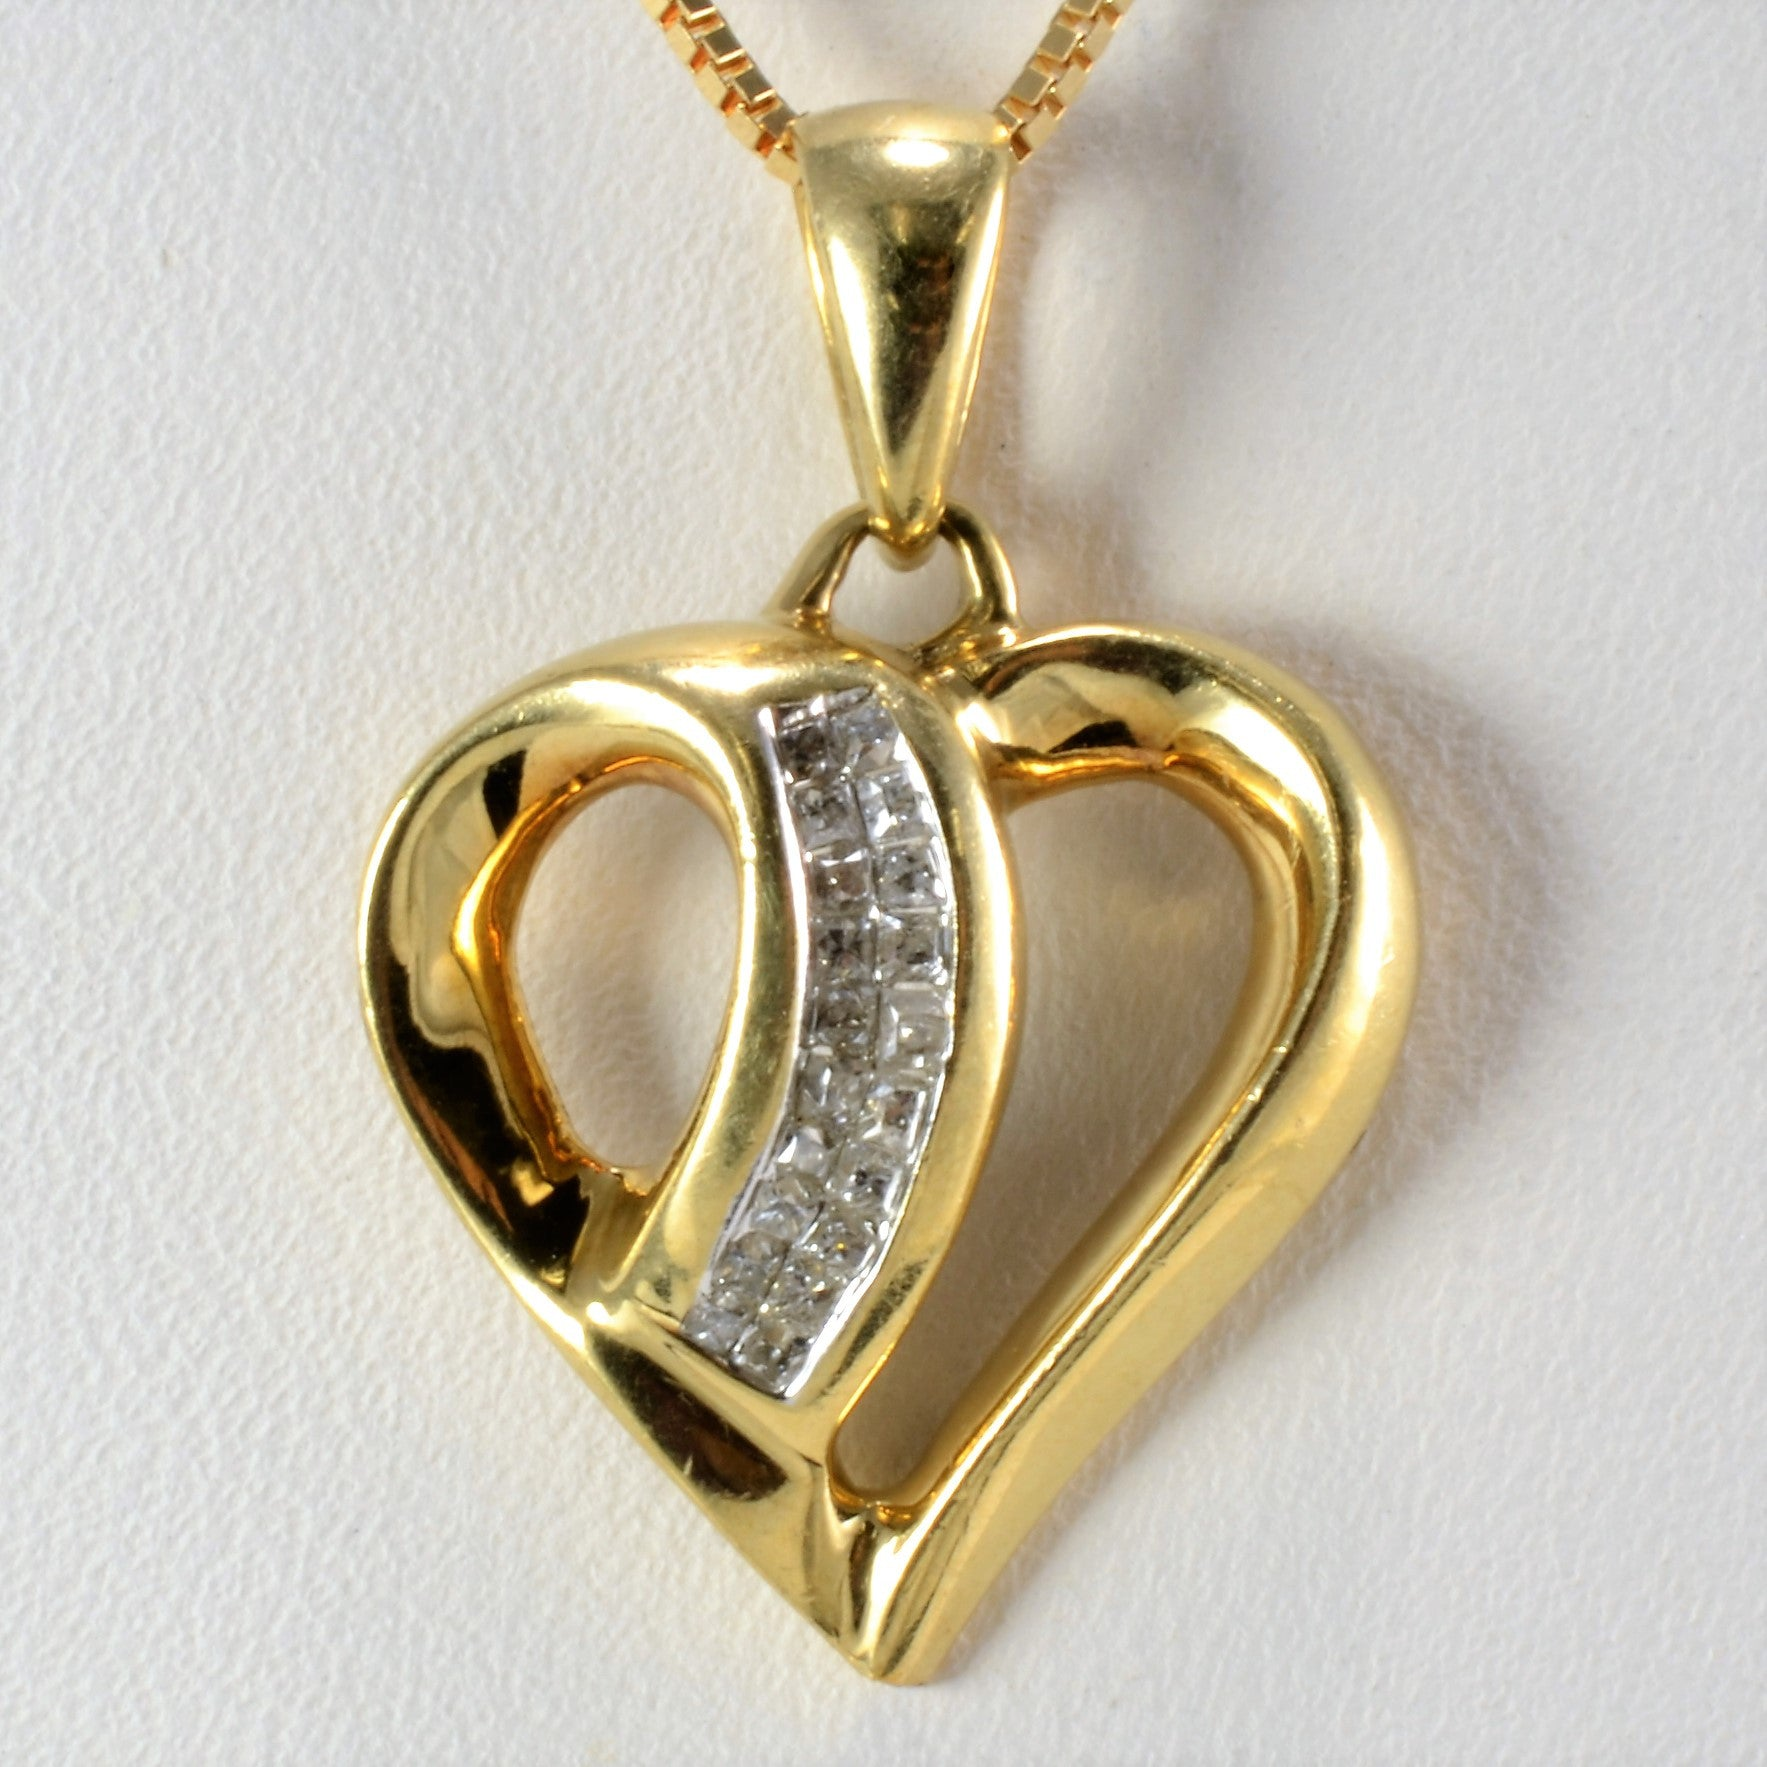 diamond cutting shape shaped jewelry heart products faulhaber works